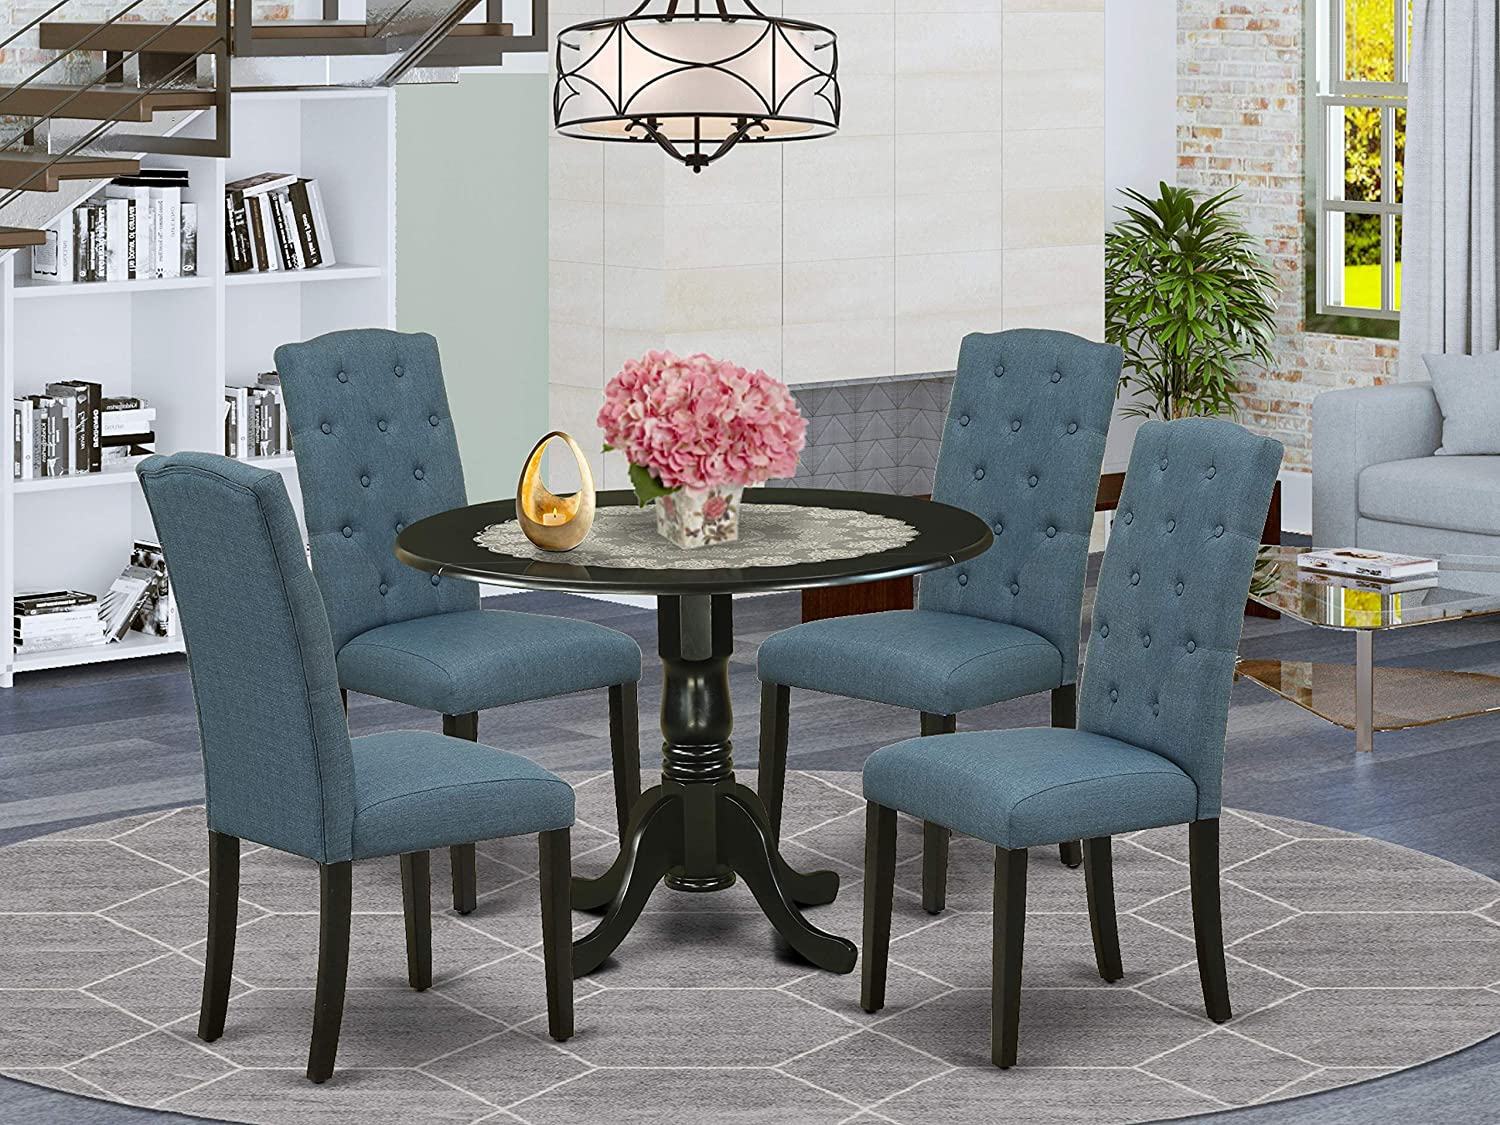 East West Furniture Kitchen Dinette Set 5 Pc - Blue Linen Fabric Button-tufted Kitchen Parson Chairs - Black Finish Solid wood drop leaves Pedestal Dining Table and Frame